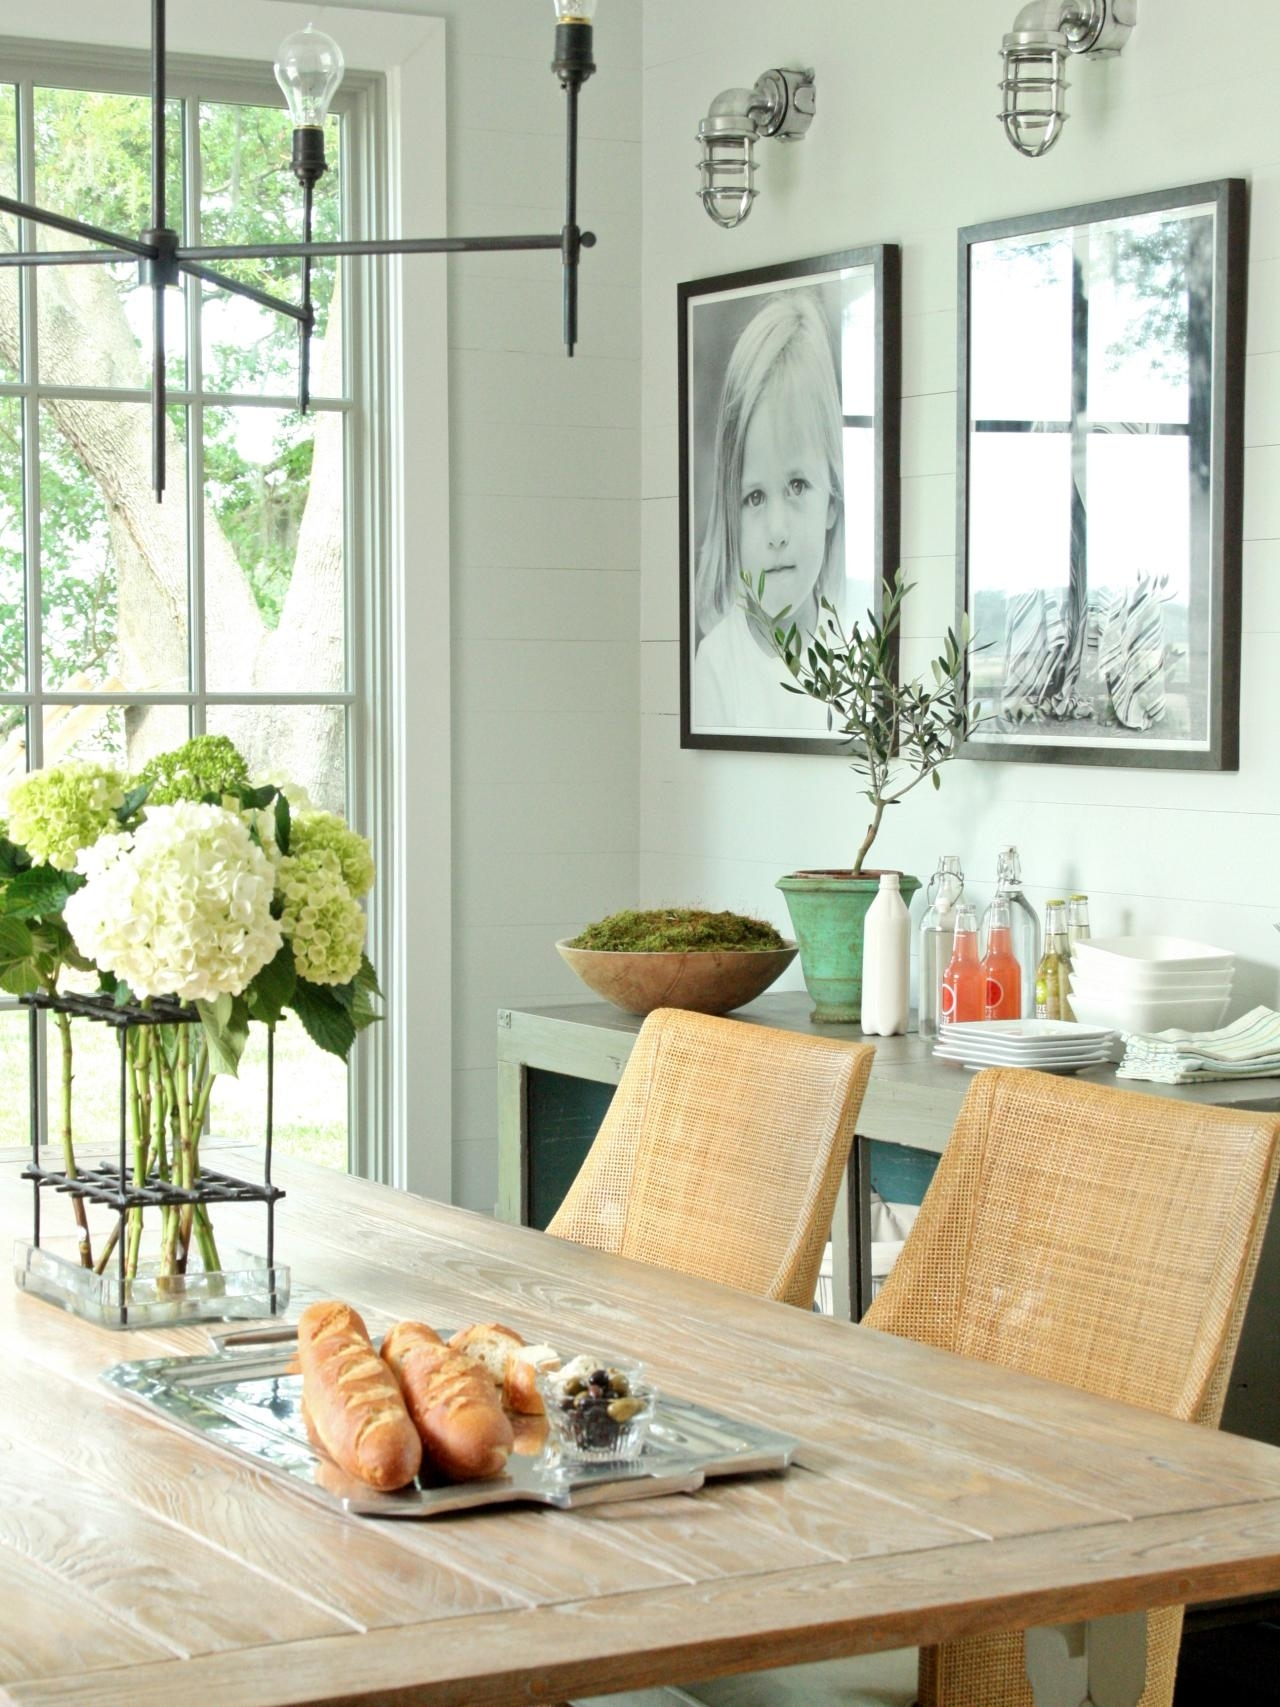 10 Unique Wall Decor Ideas For Dining Room %name 2020